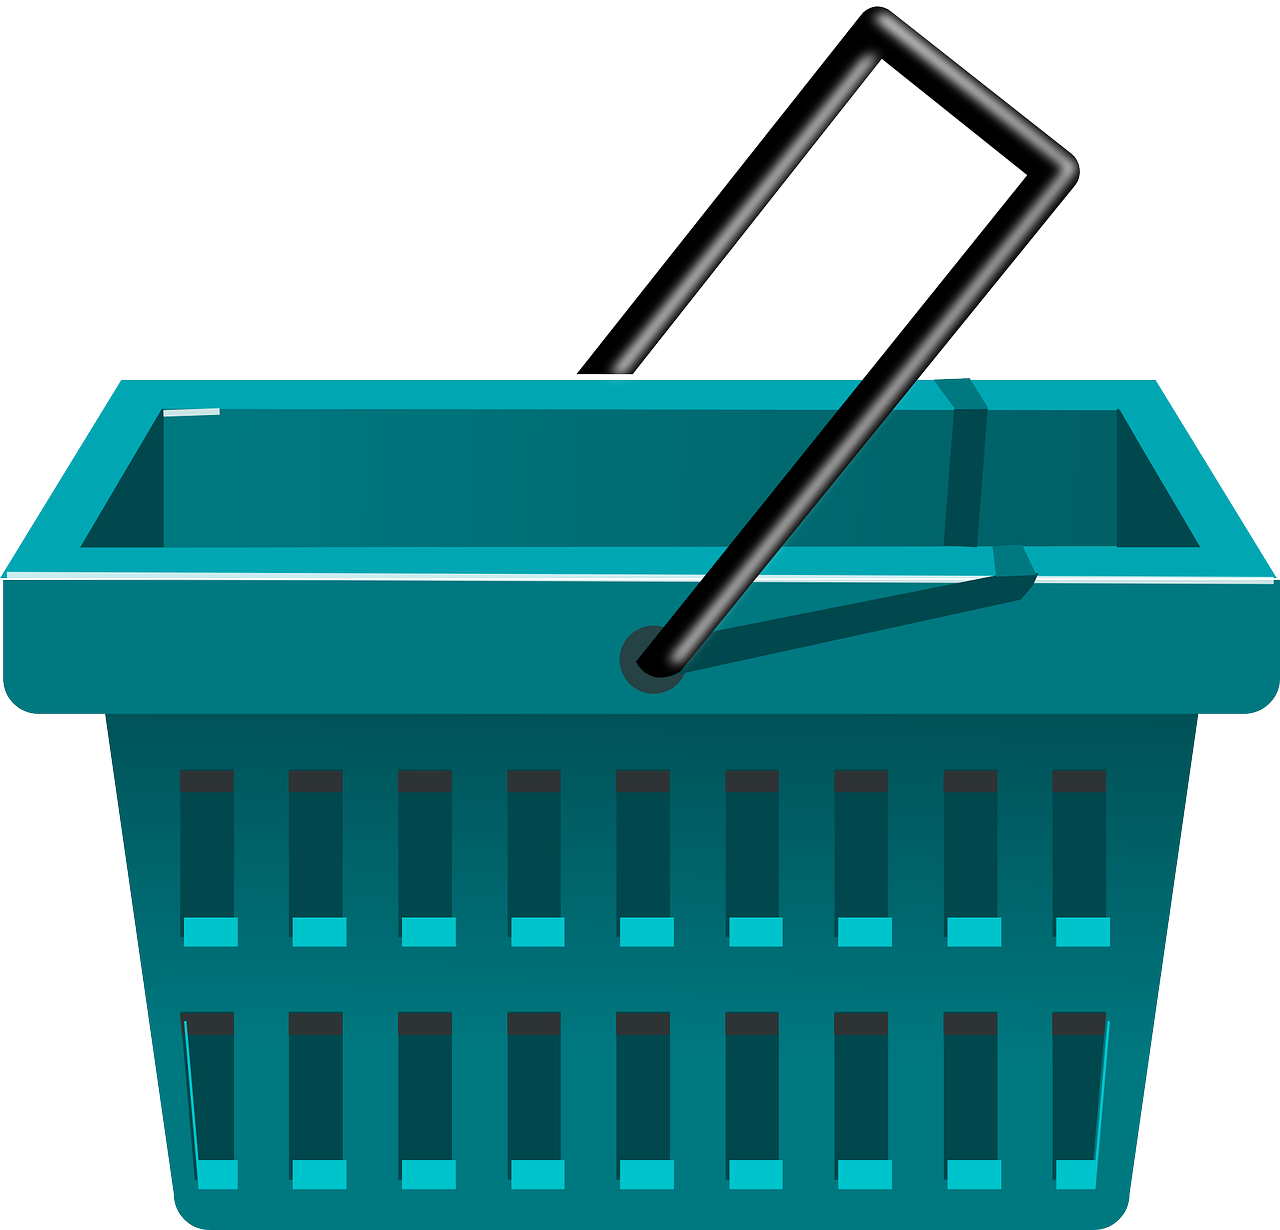 Bag clipart grocery basket Basket Free Use Shopping Domain